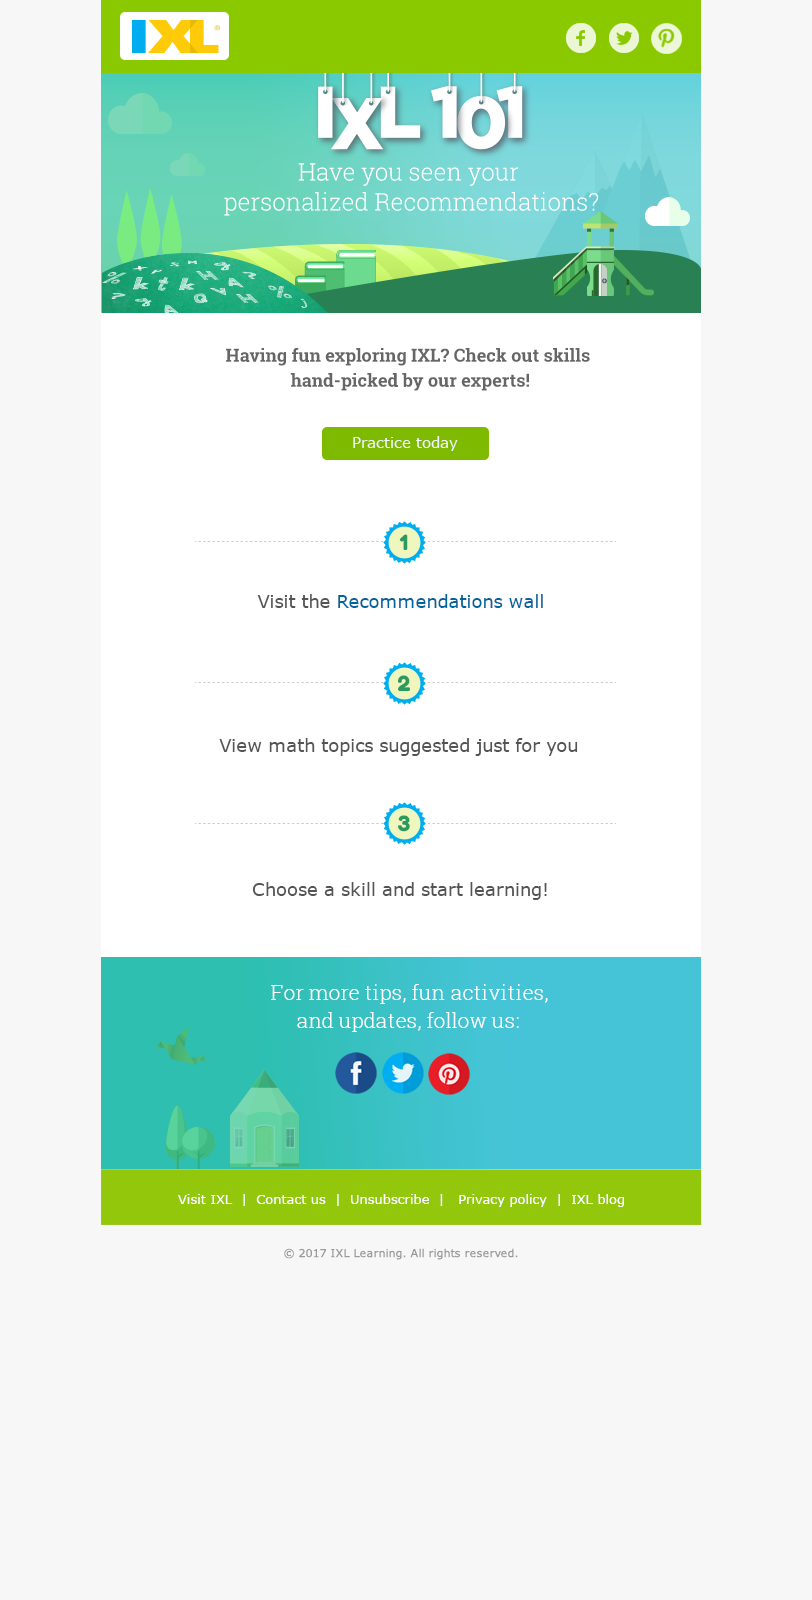 IXL email designs on Behance